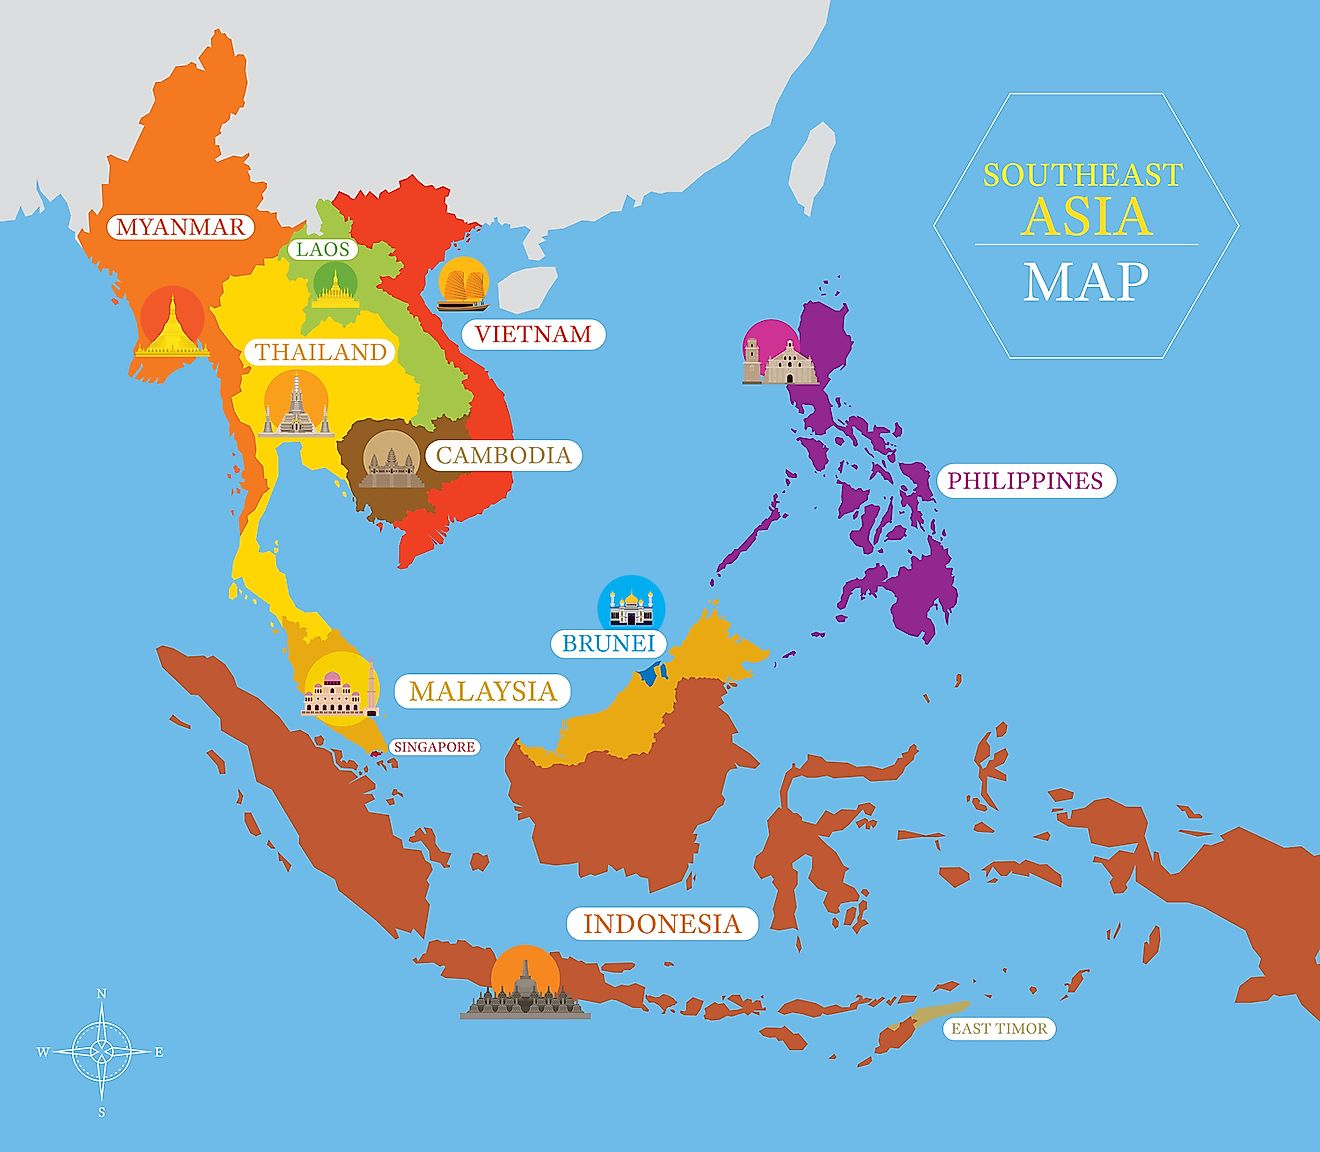 Map of Southeast Asia. Image credit: MuchMania/Shutterstock.com